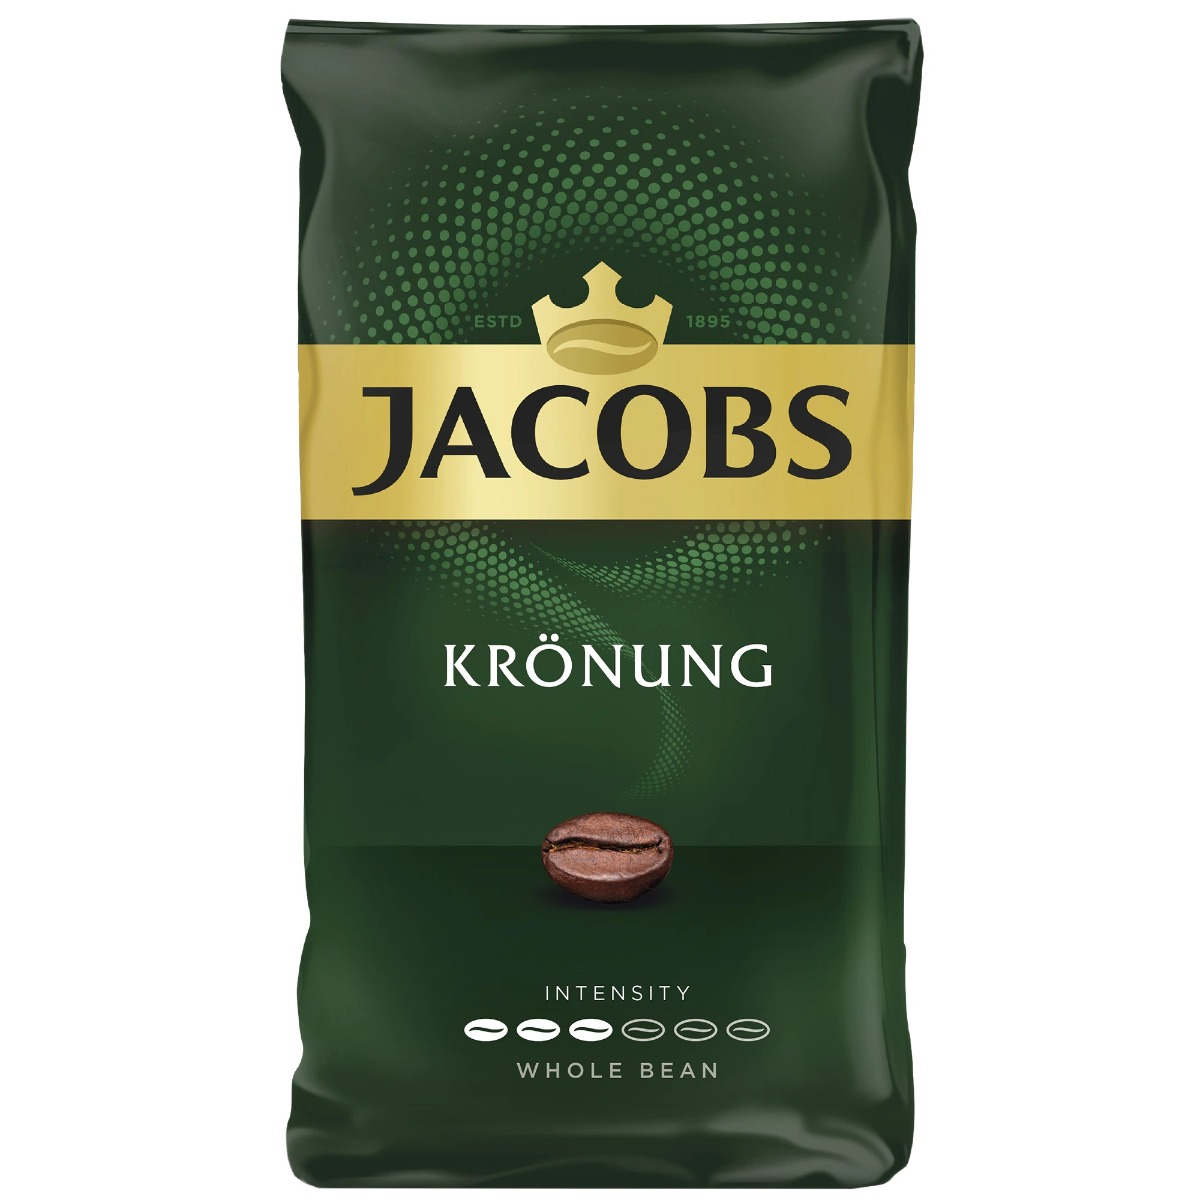 Cafea boabe Jacobs Kronung, 500 g imagine 2021